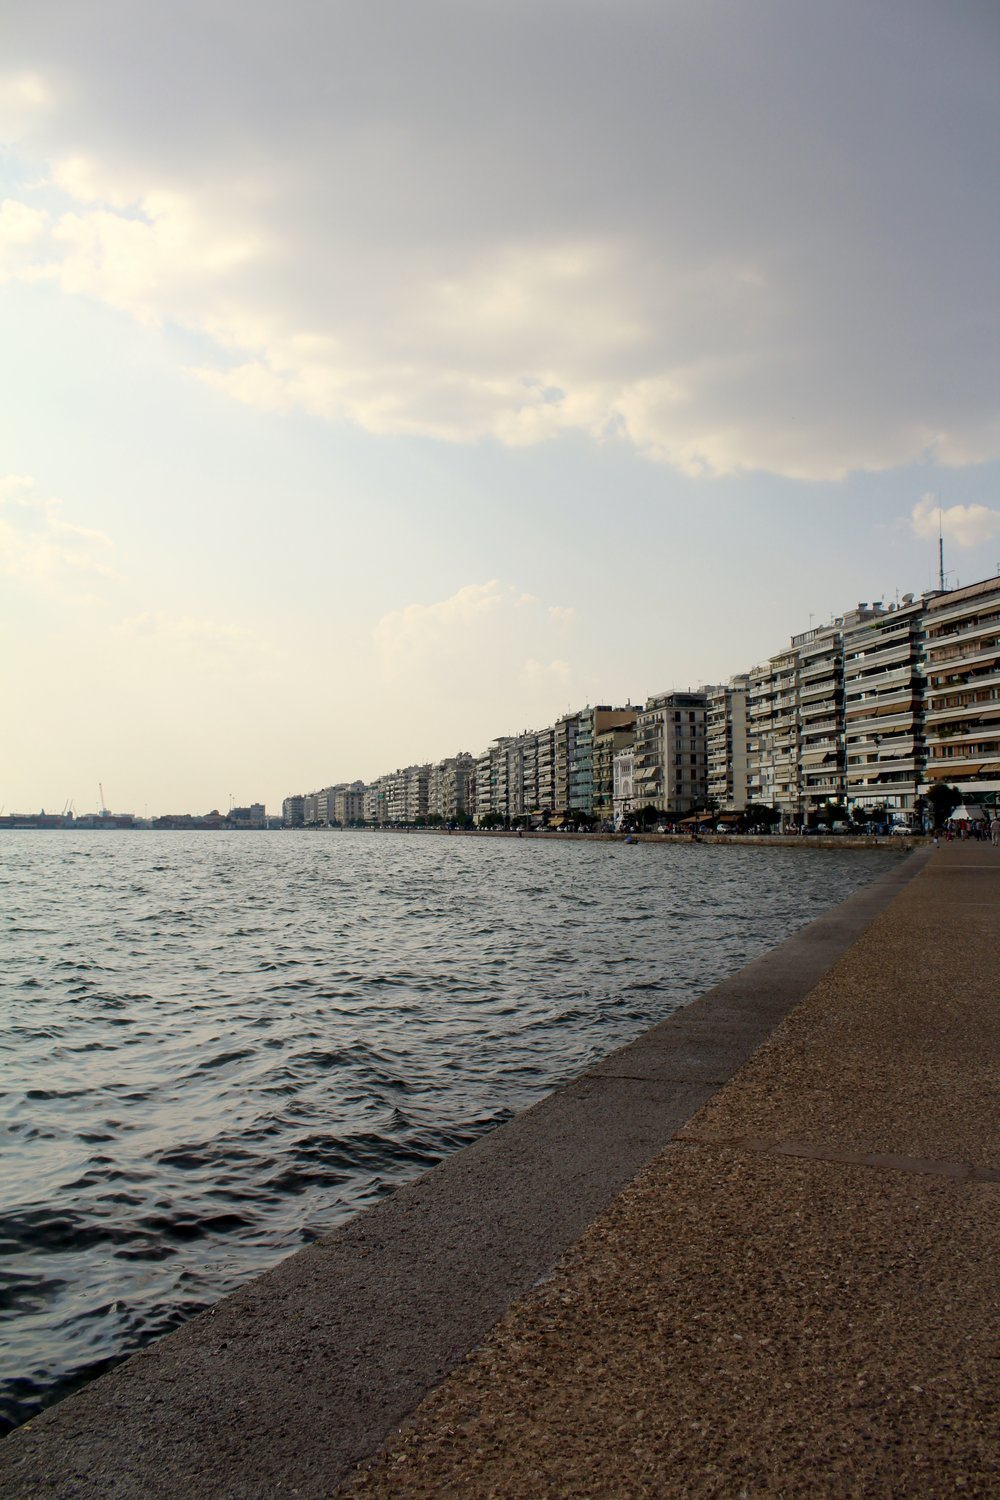 The edge of the world in Thessaloniki, Greece